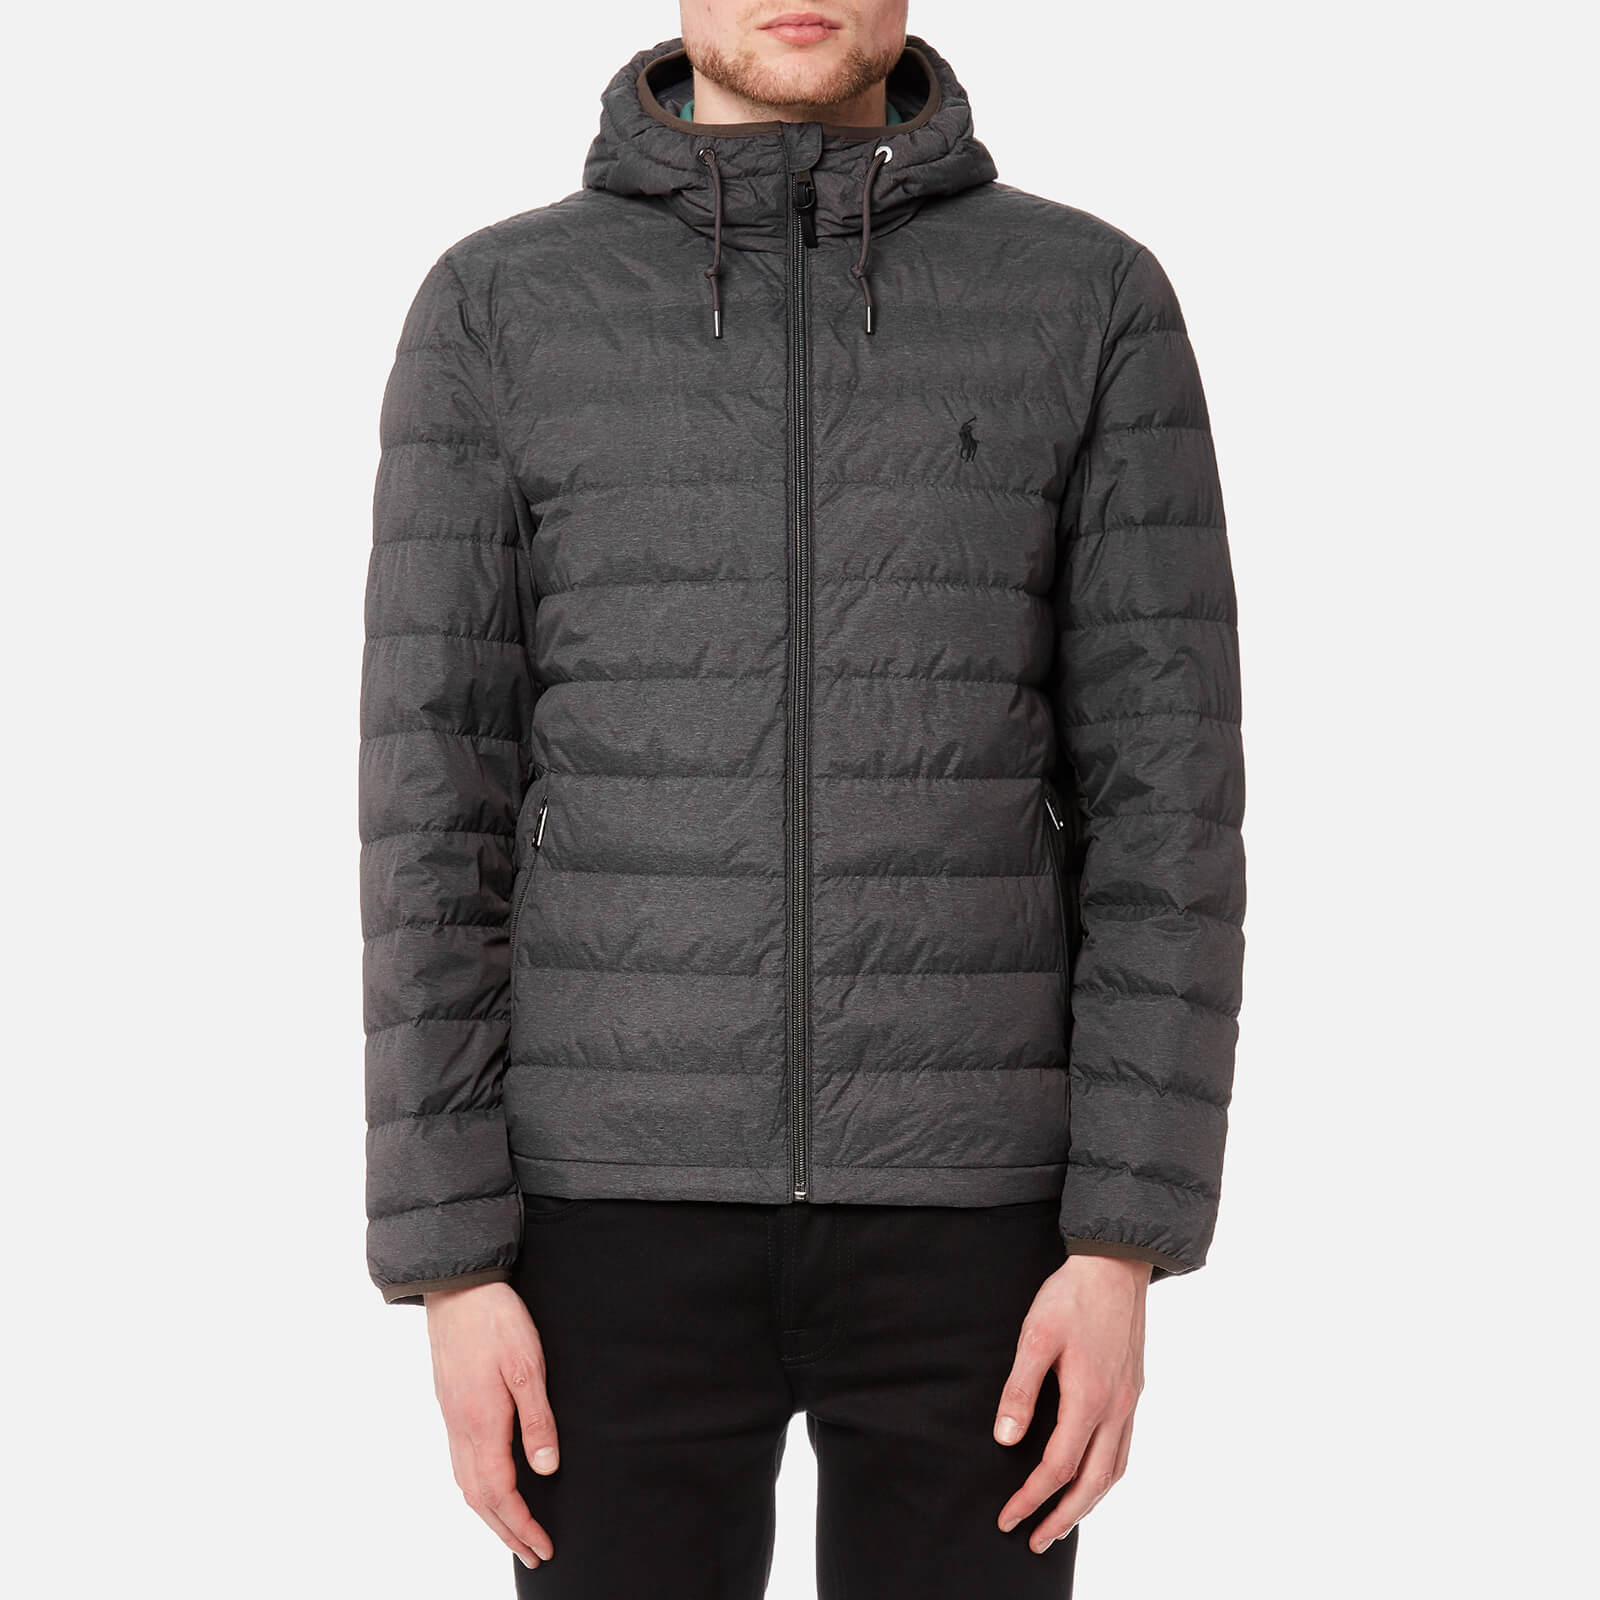 24b0f084db7e Polo Ralph Lauren Men s Packable Down Fill Jacket - Windsor Heather - Free  UK Delivery over £50